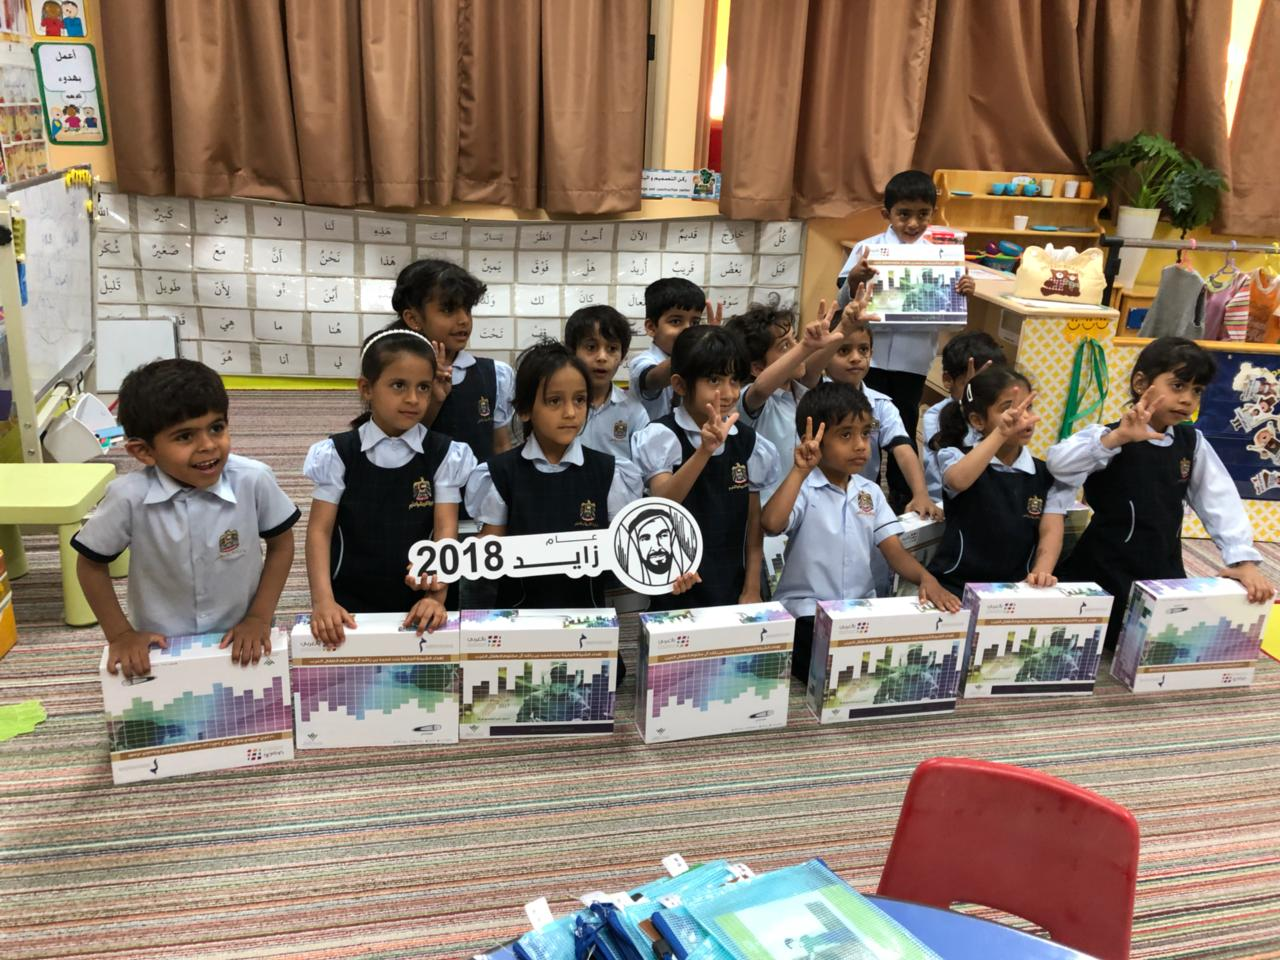 mbrf, hsbc distribute 700 'smart reading library bags' to children